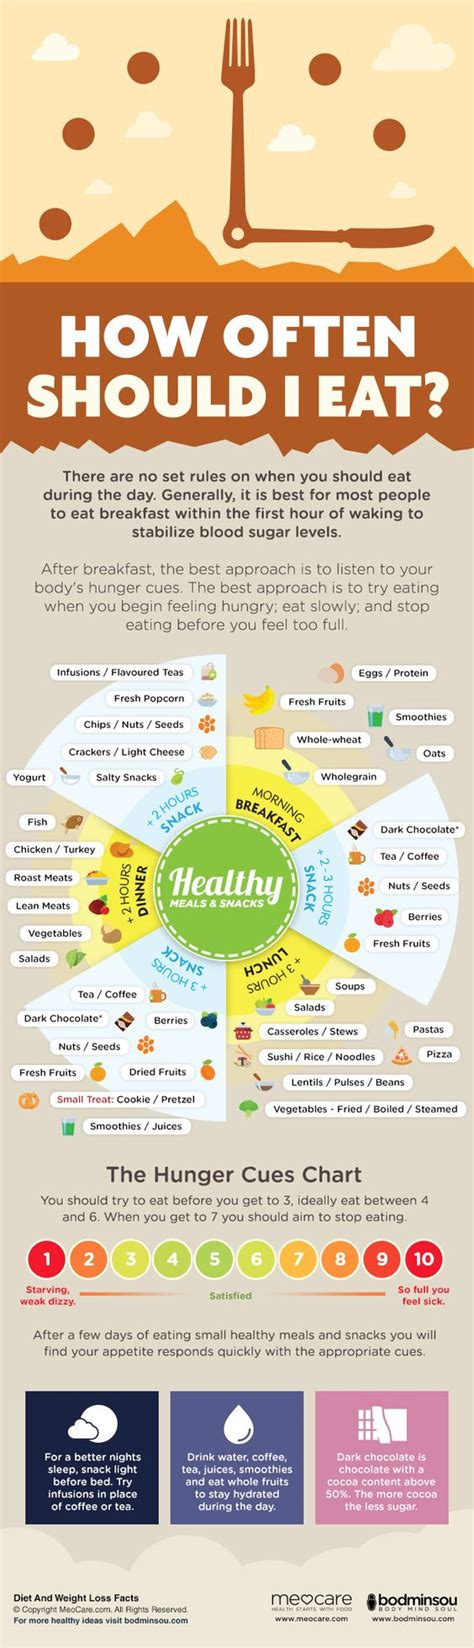 How Often Should I Eat? Infographic